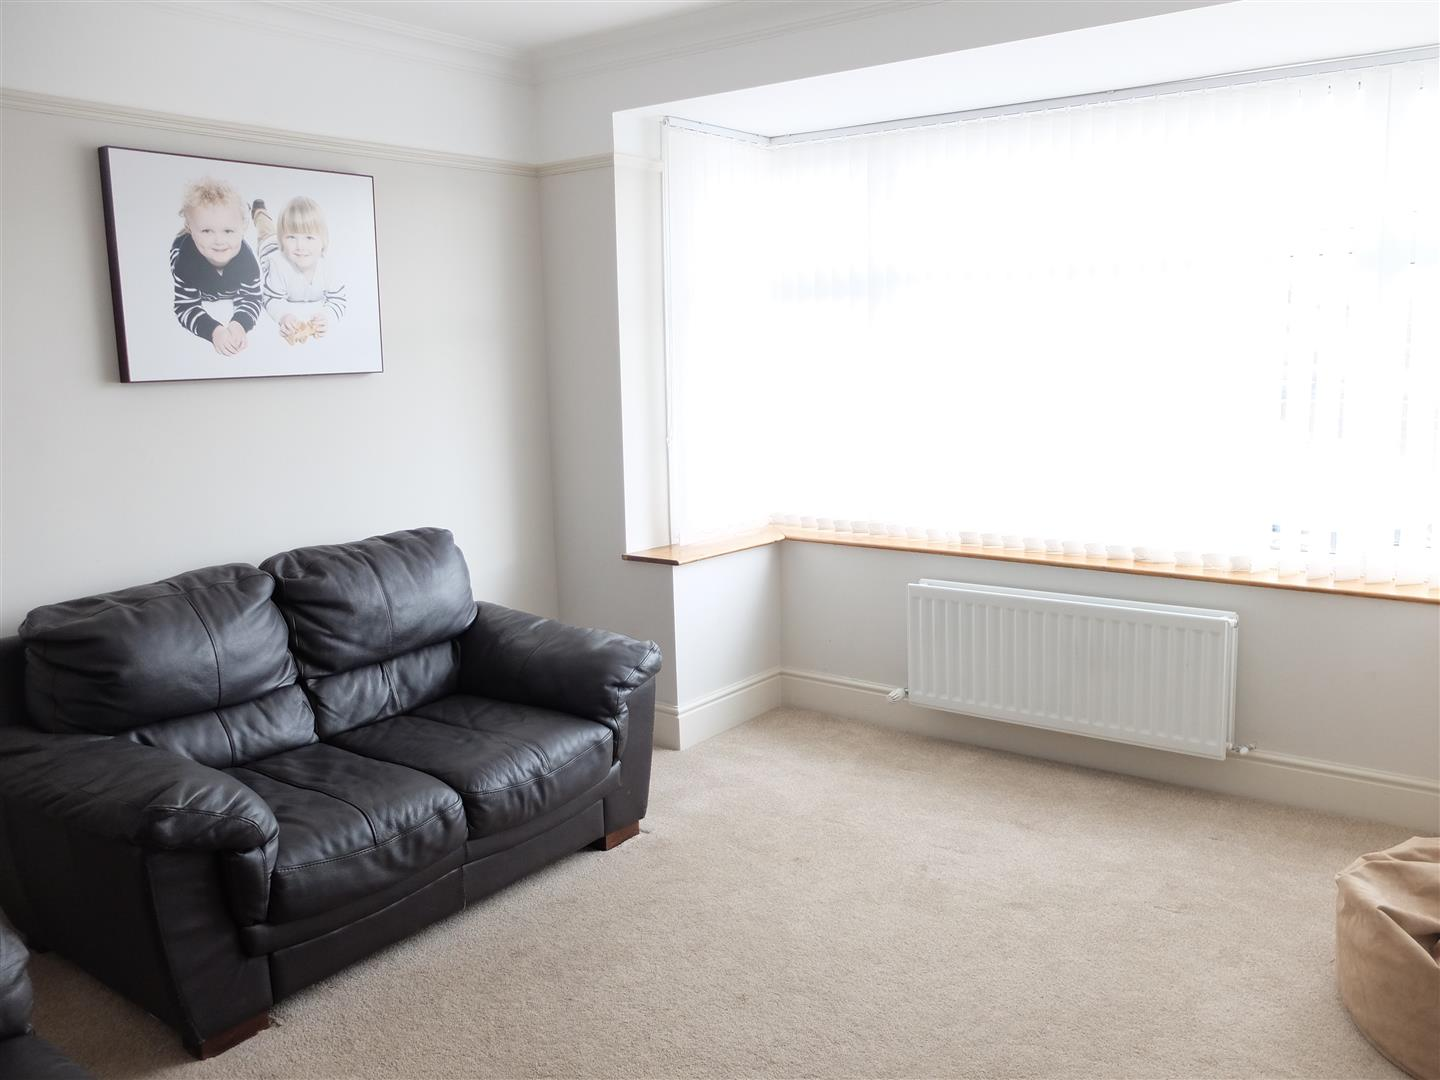 218 Wigton Road Carlisle Home For Sale 180,000